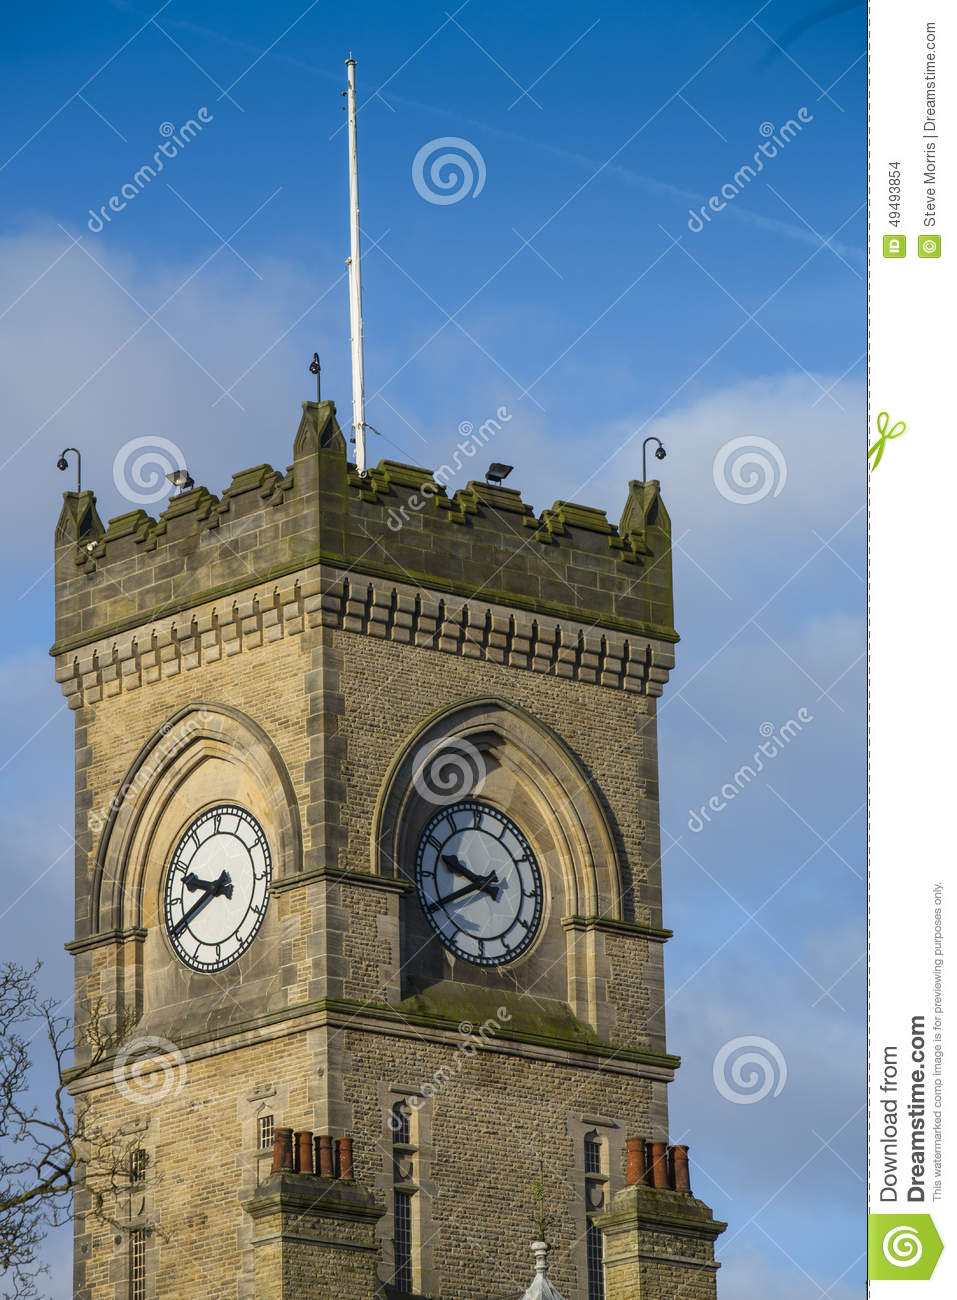 Victorian Gothic Style Clock Tower Architecture Stock Photo.